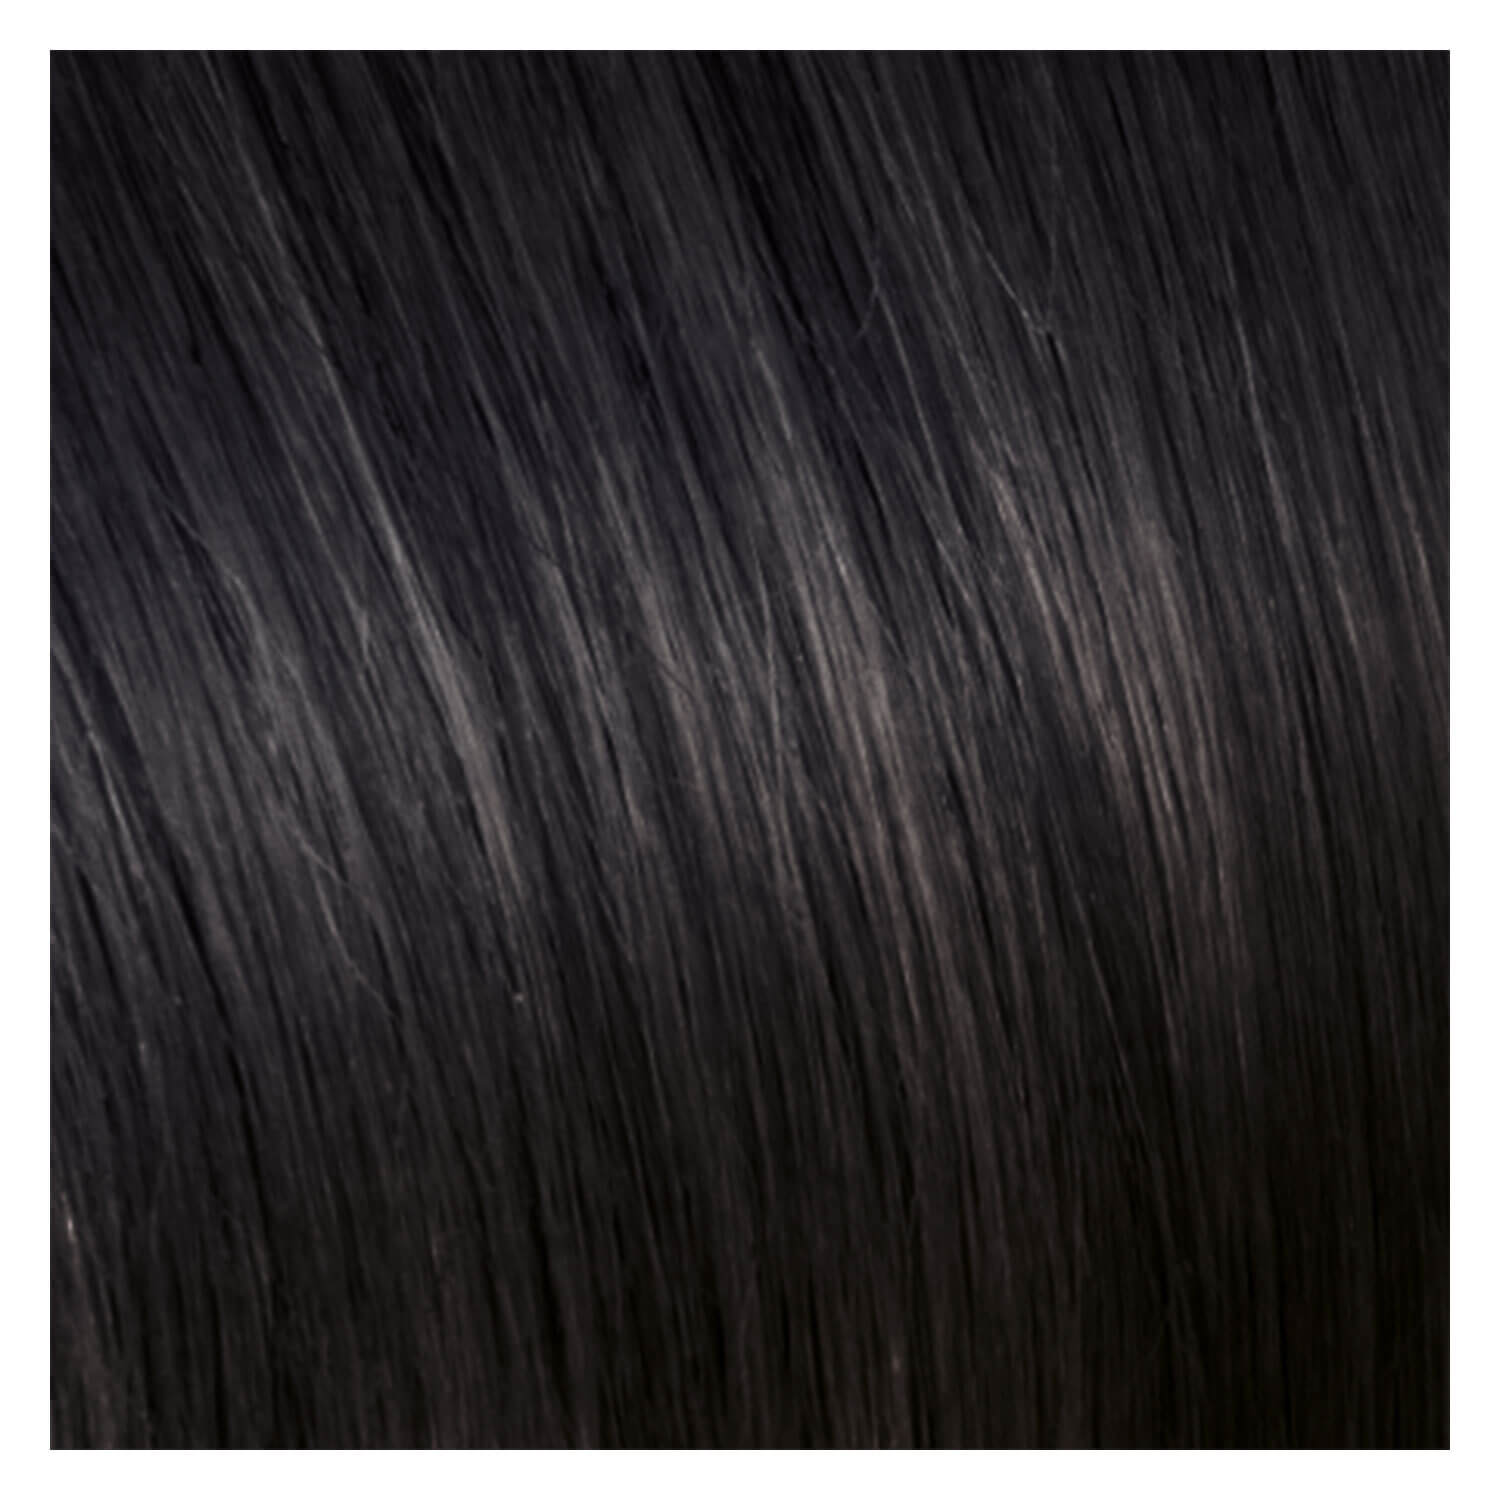 SHE Clip In-System Hair Extensions - 9-teiliges Set 2 Dunkles Kastanienbraun 50/55cm